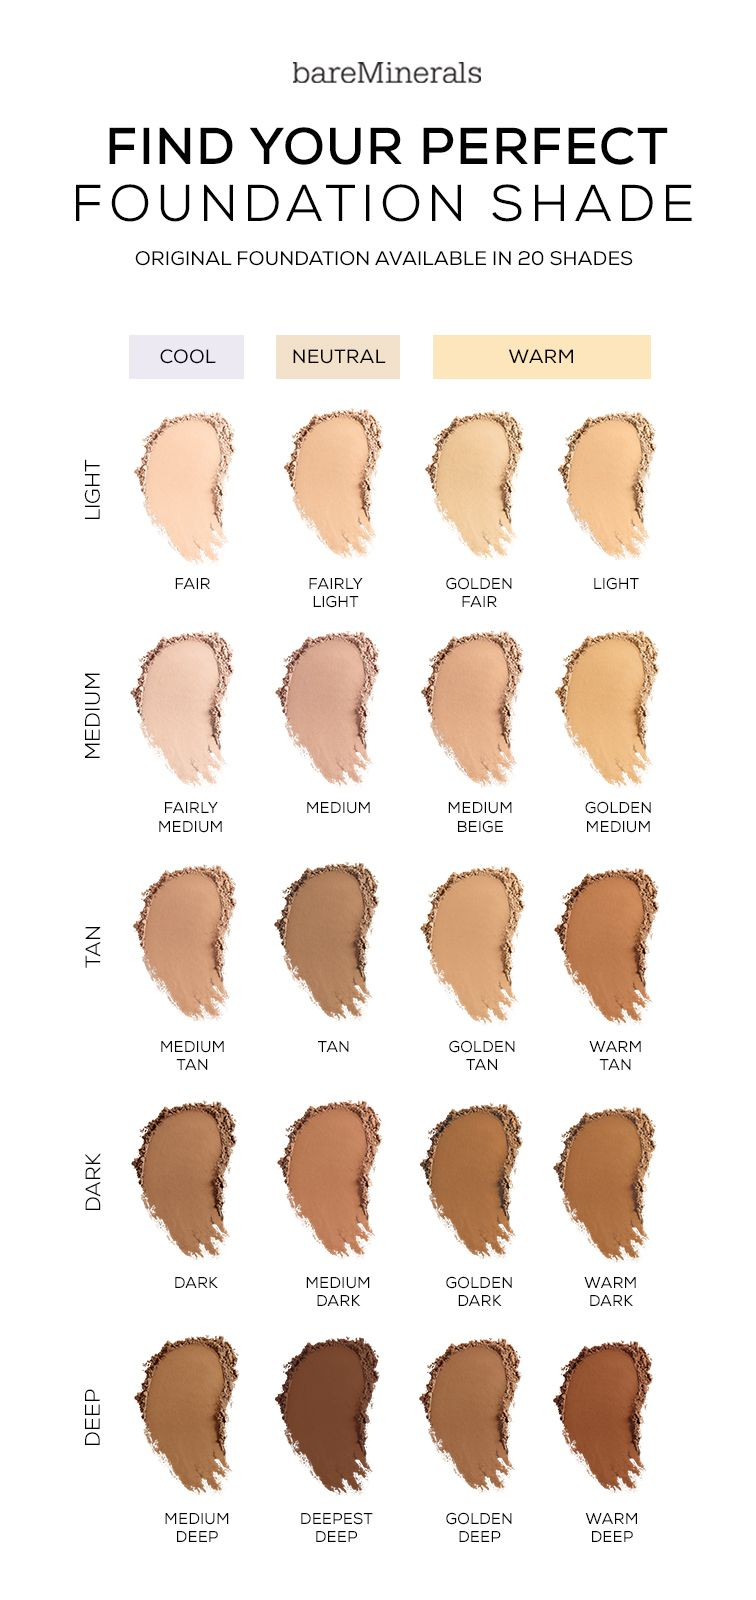 Original Foundation gives you a flawless coverage, with a